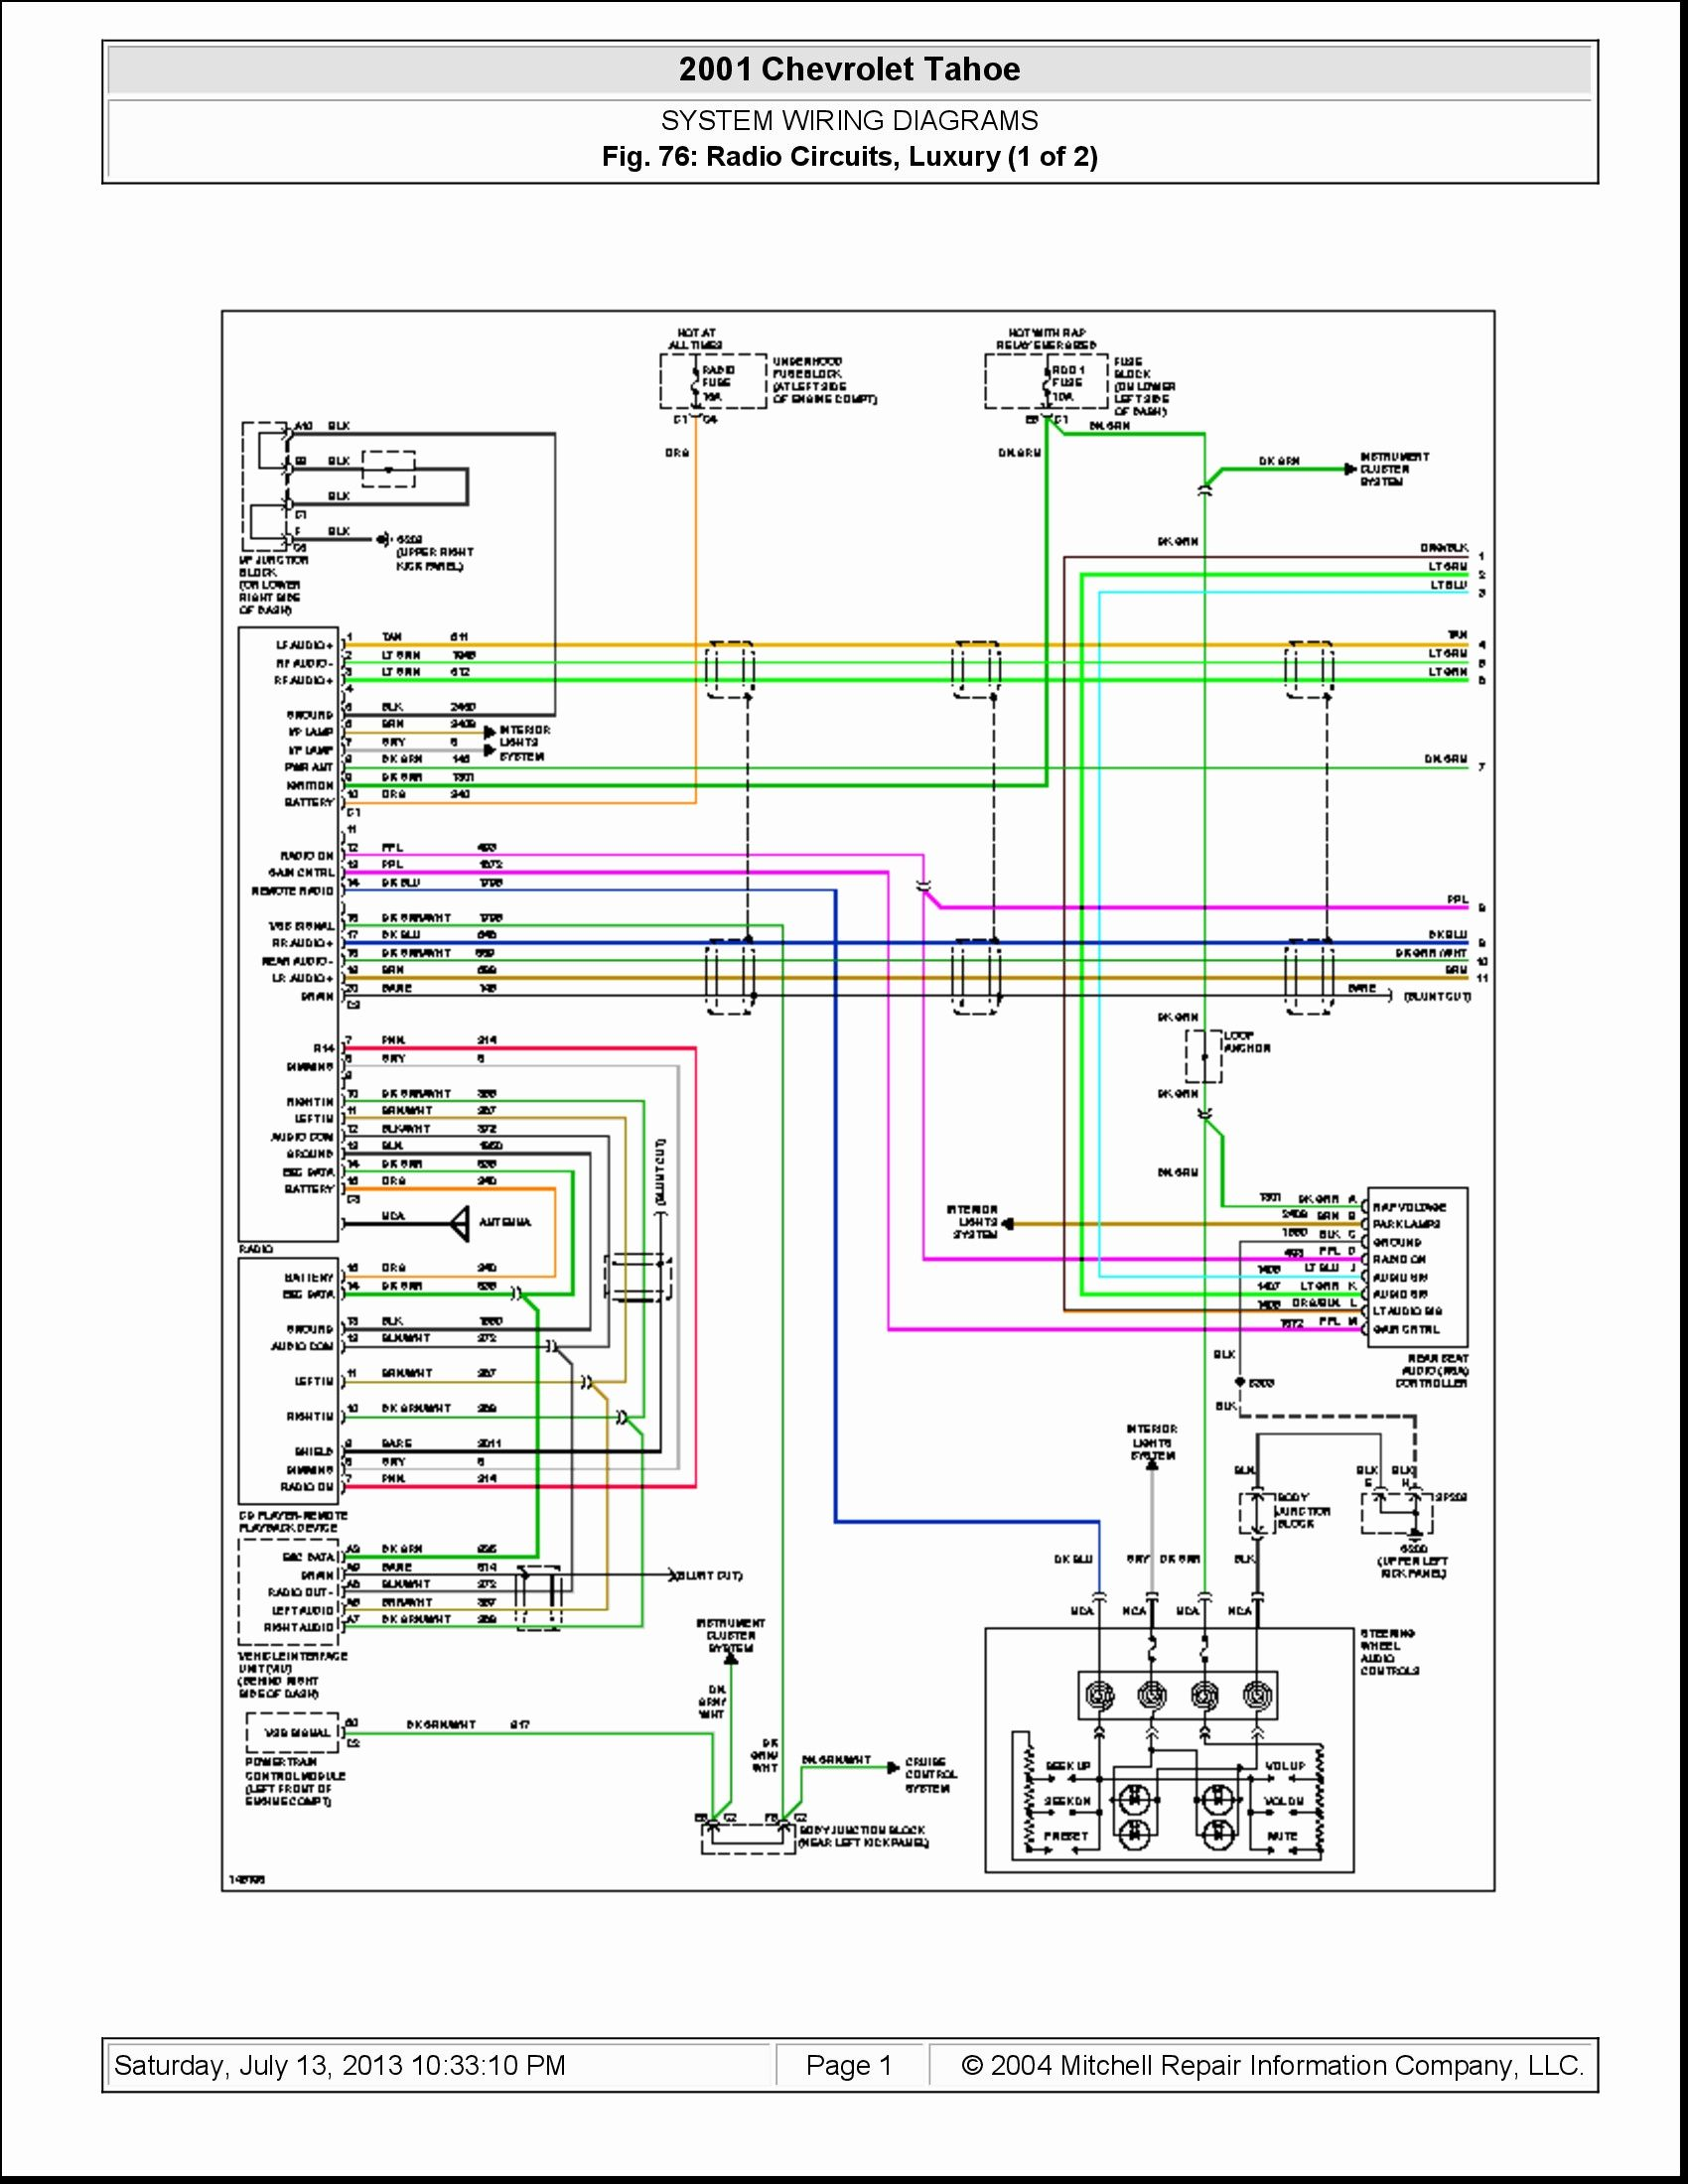 77 Luxury 2005 Chevy Silverado Tail Light Wiring Diagram | Chevy silverado, 2003  chevy silverado, 2004 chevy silverado | 2003 Silverado C1500 Wiring Diagram |  | Pinterest